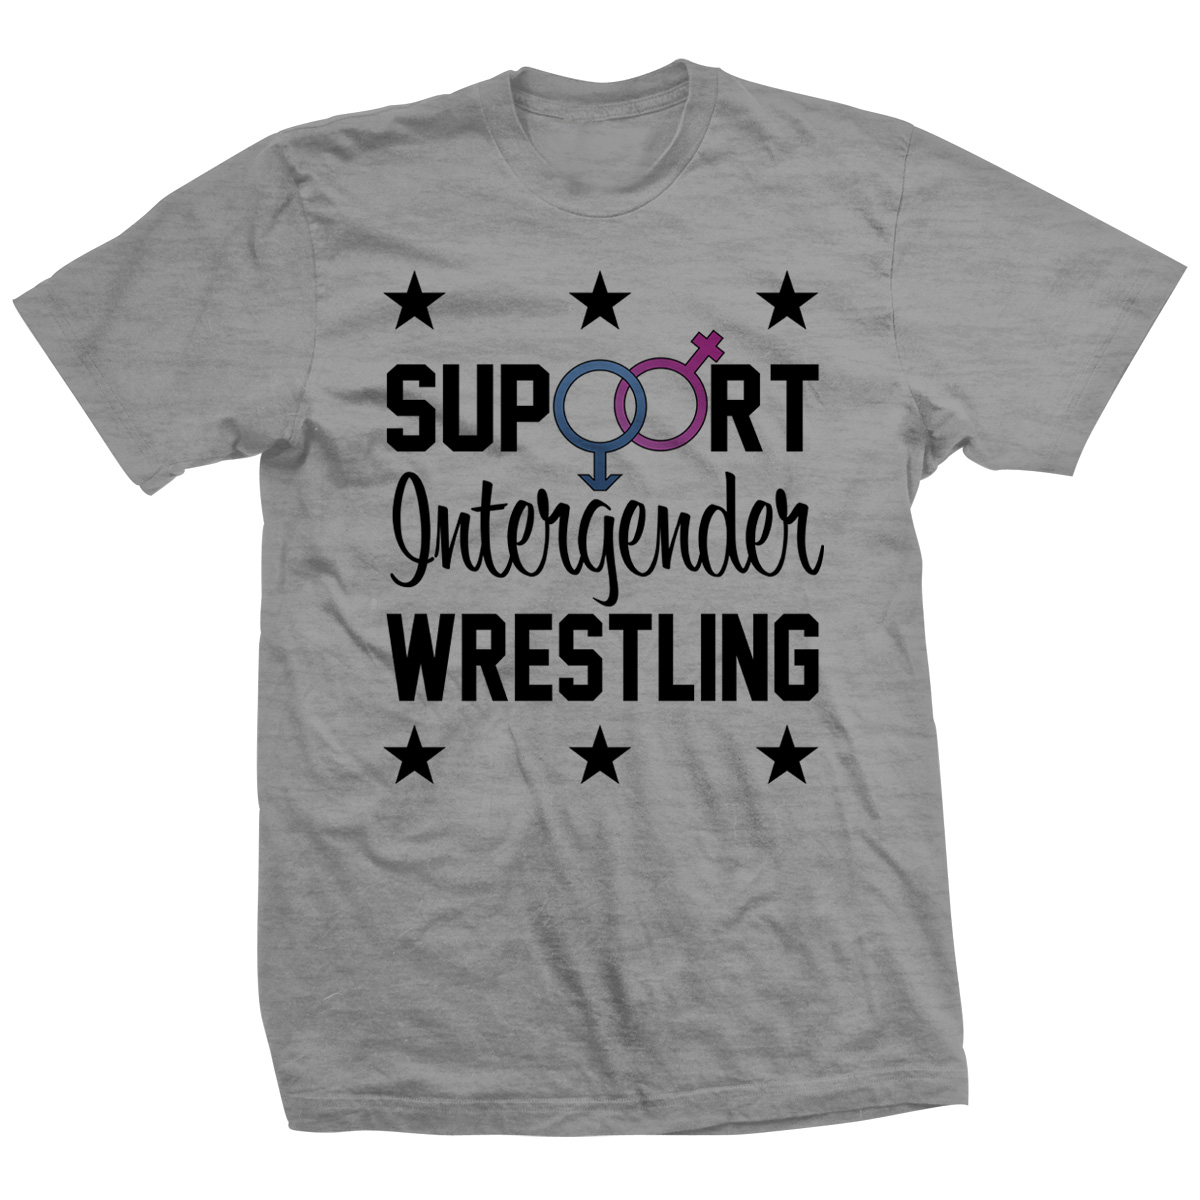 Support Intergender Wrestling T-shirt